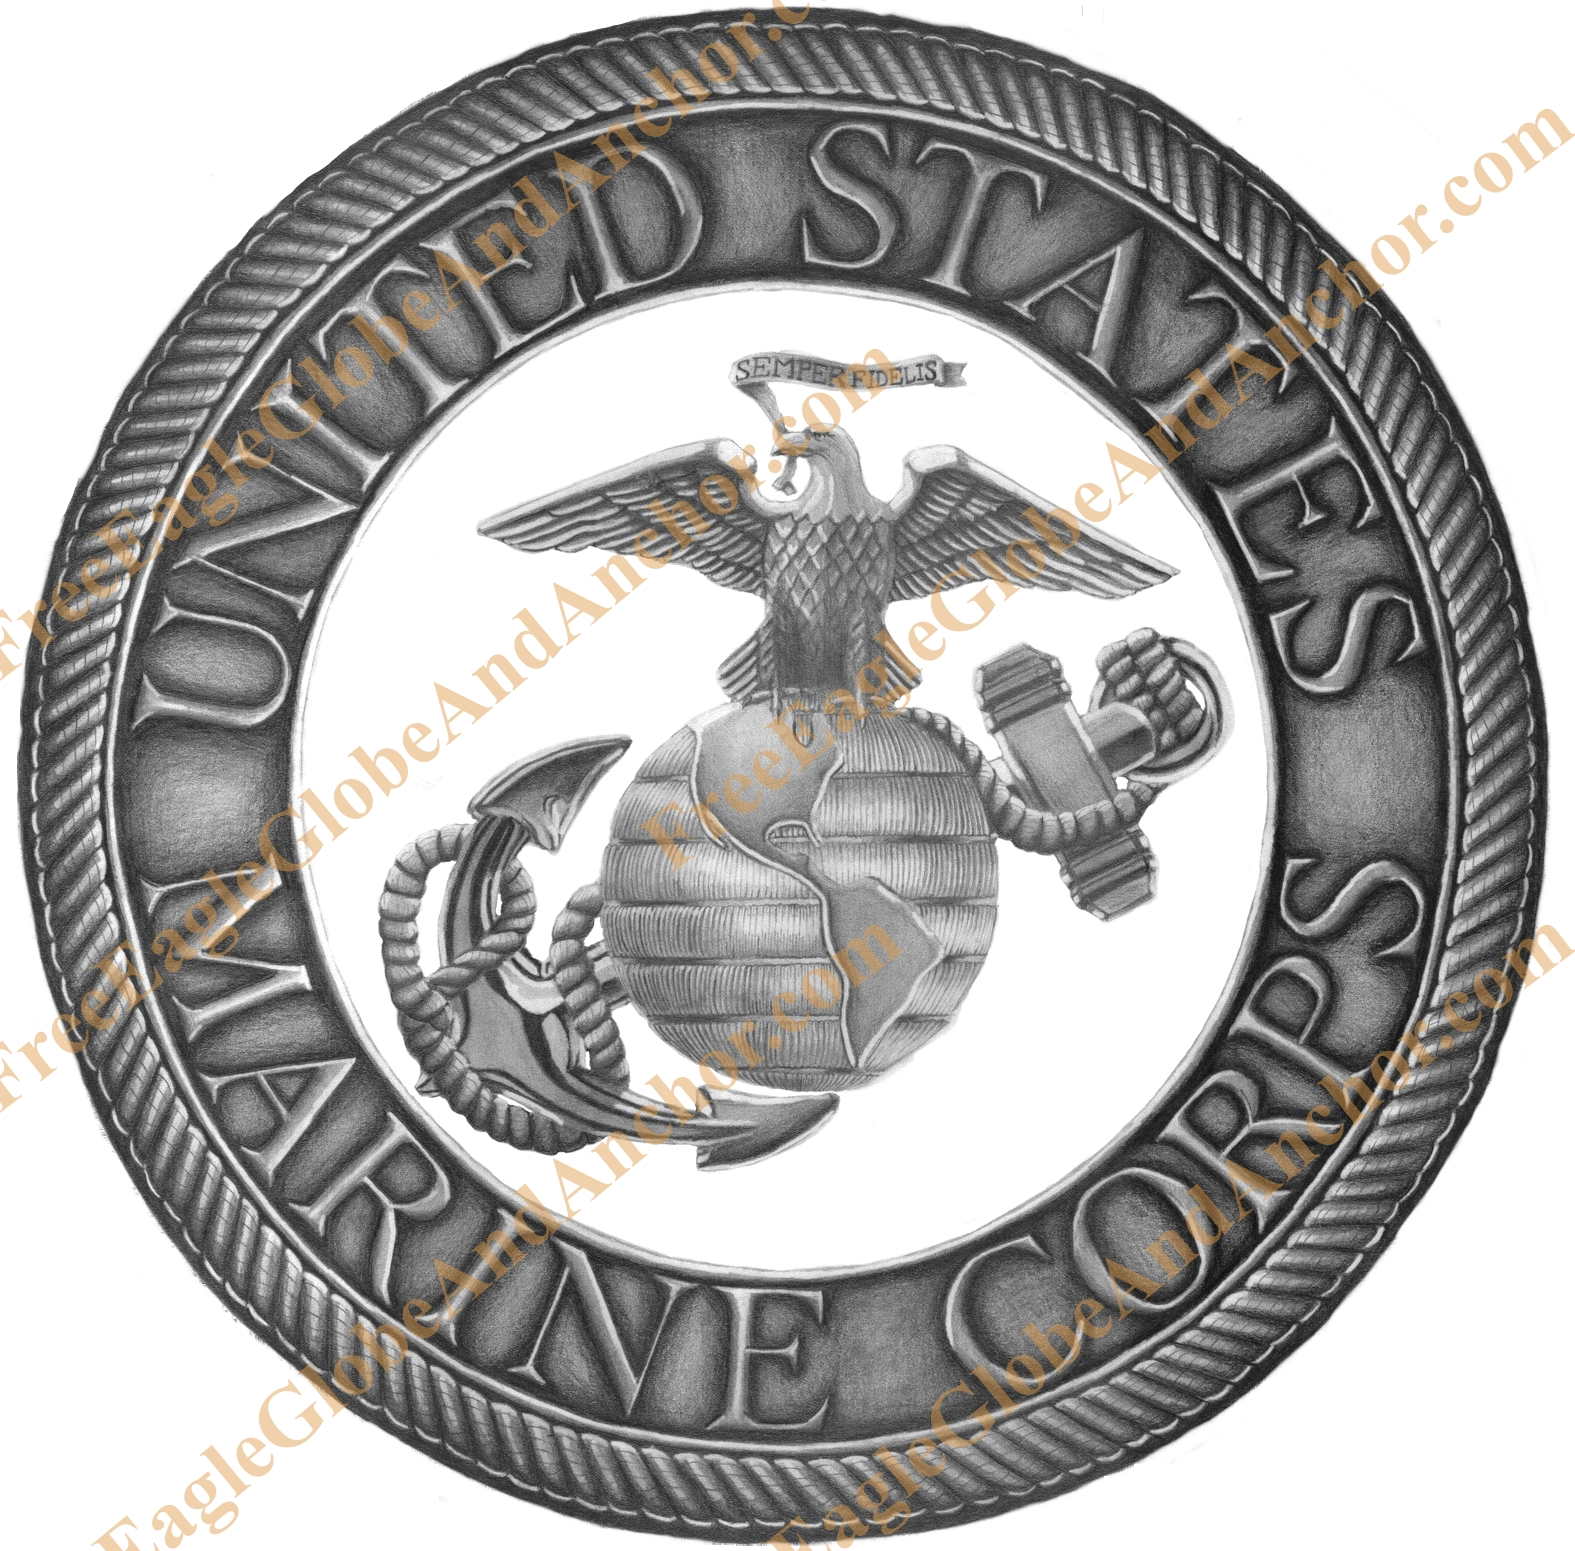 1575x1551 Usmc Eagle, Globe, And Anchor Graphite Drawing Turned Into A Print